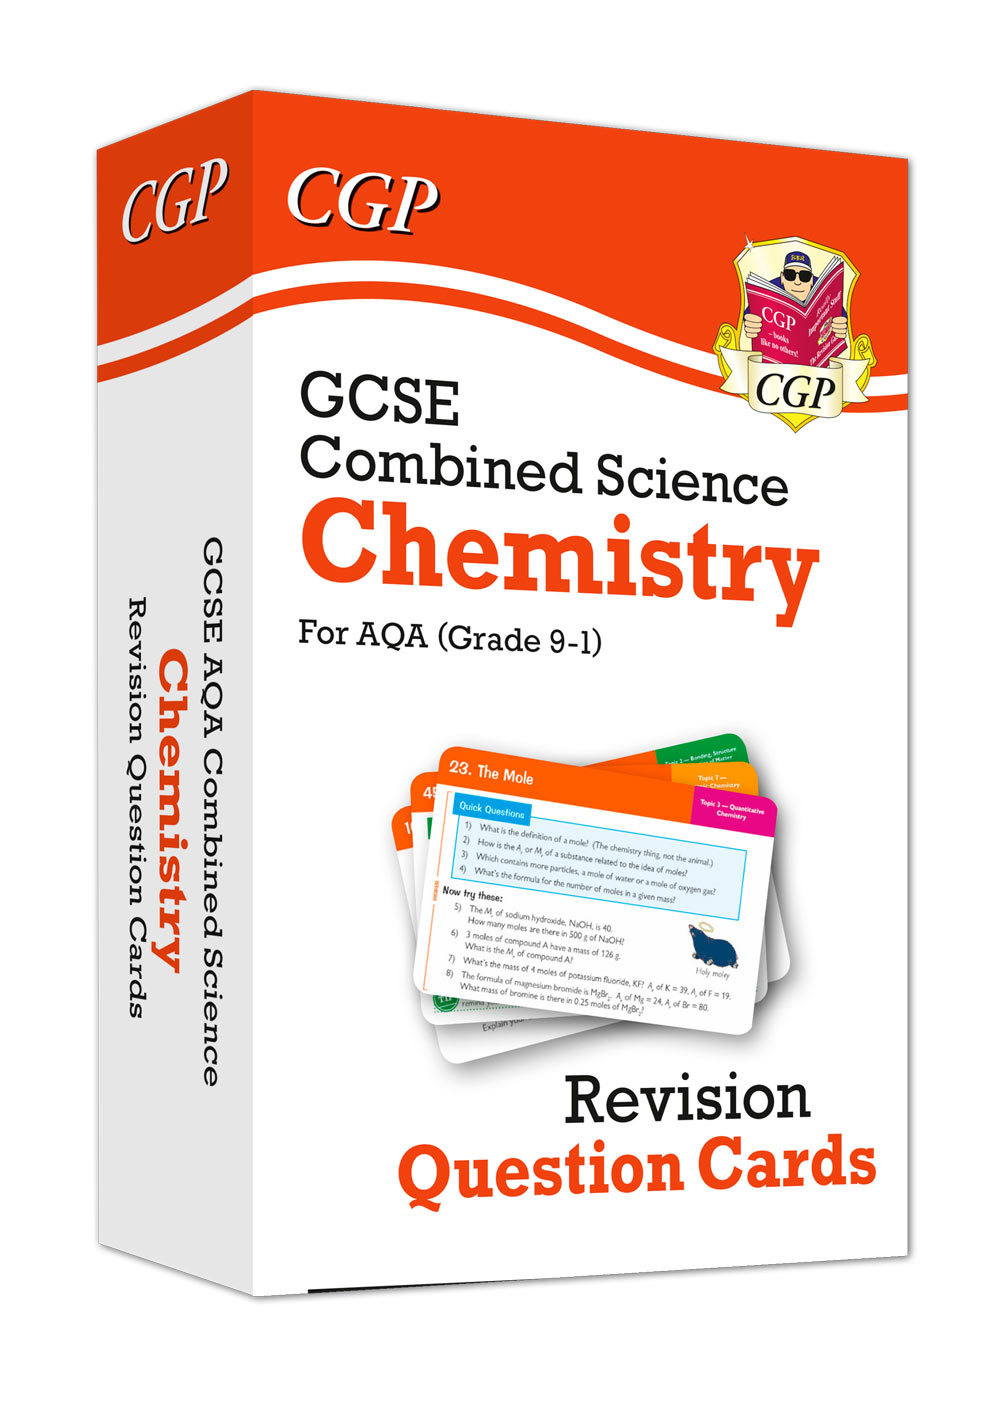 SCCAF41 - 9-1 GCSE Combined Science: Chemistry AQA Revision Question Cards